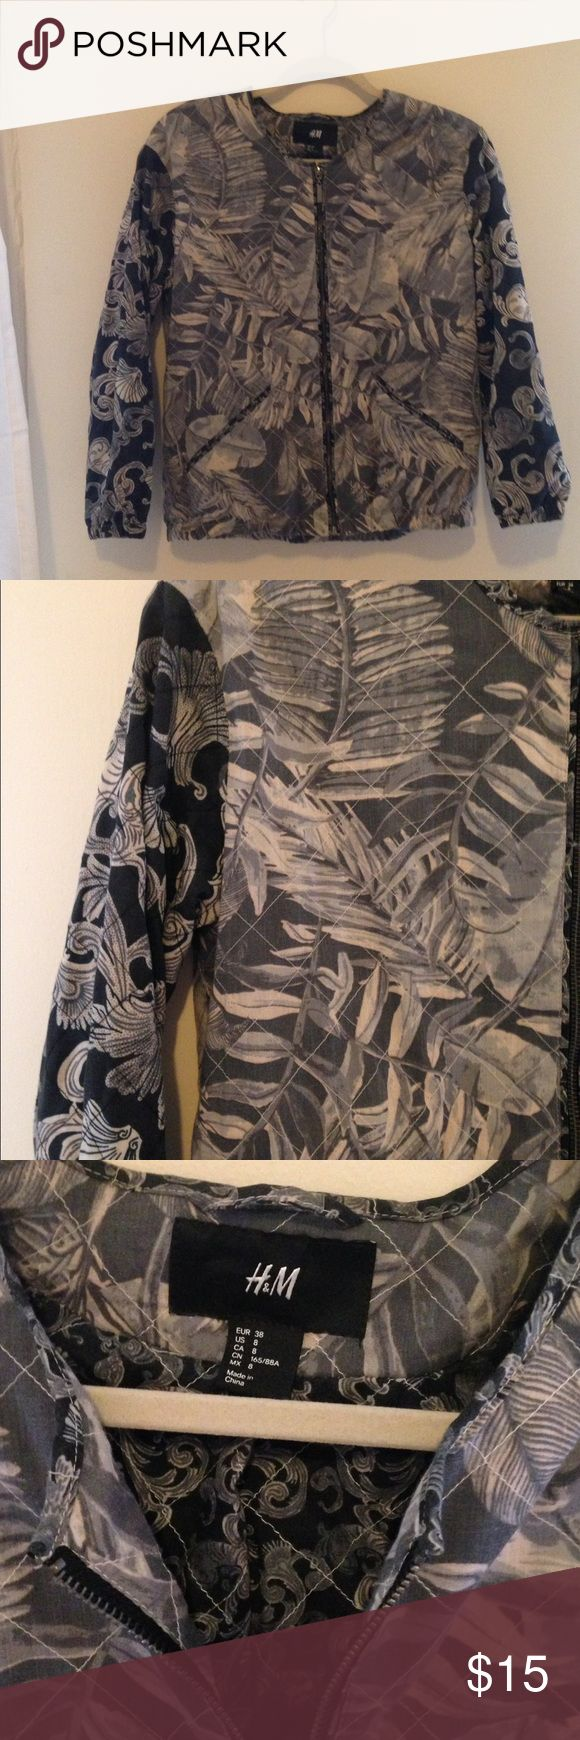 H&M printed bomber jacket size 8 Mixed print bomber jacket with quilted stitching detail. H&M Jackets & Coats